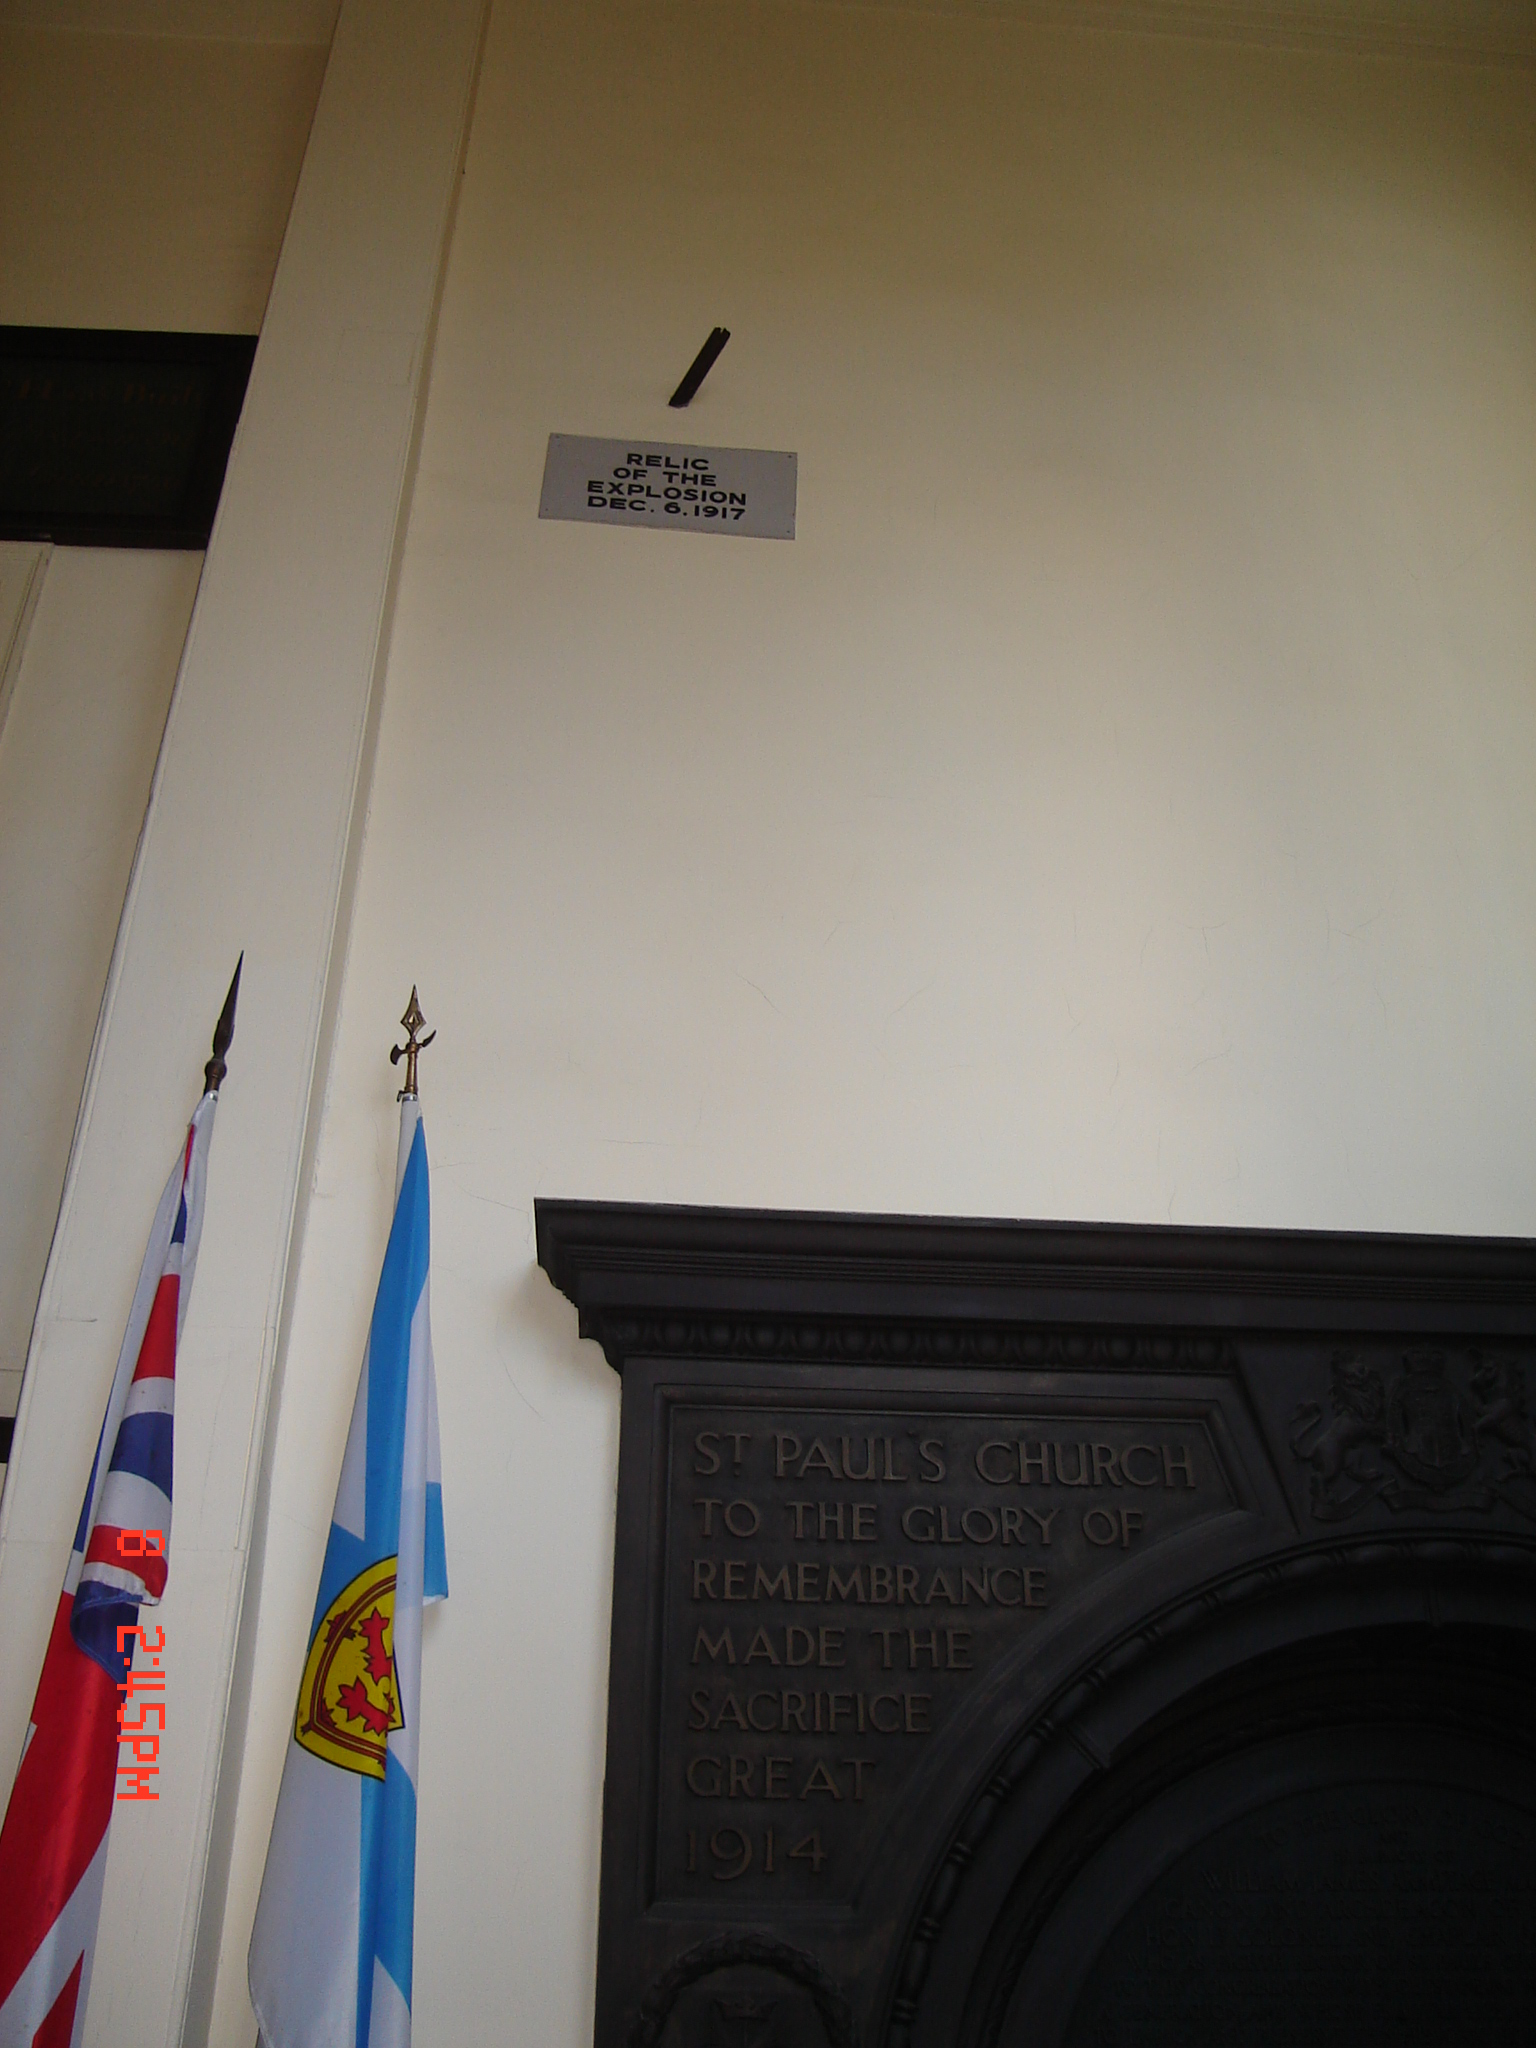 the-piece-of-metal-from-mont-blanc-remains-flown-through-the-glass-window-and-then-embedded-above-the-door-in-the-inside-wall-of-the-porch-of-st-paul_s-anglican-church1